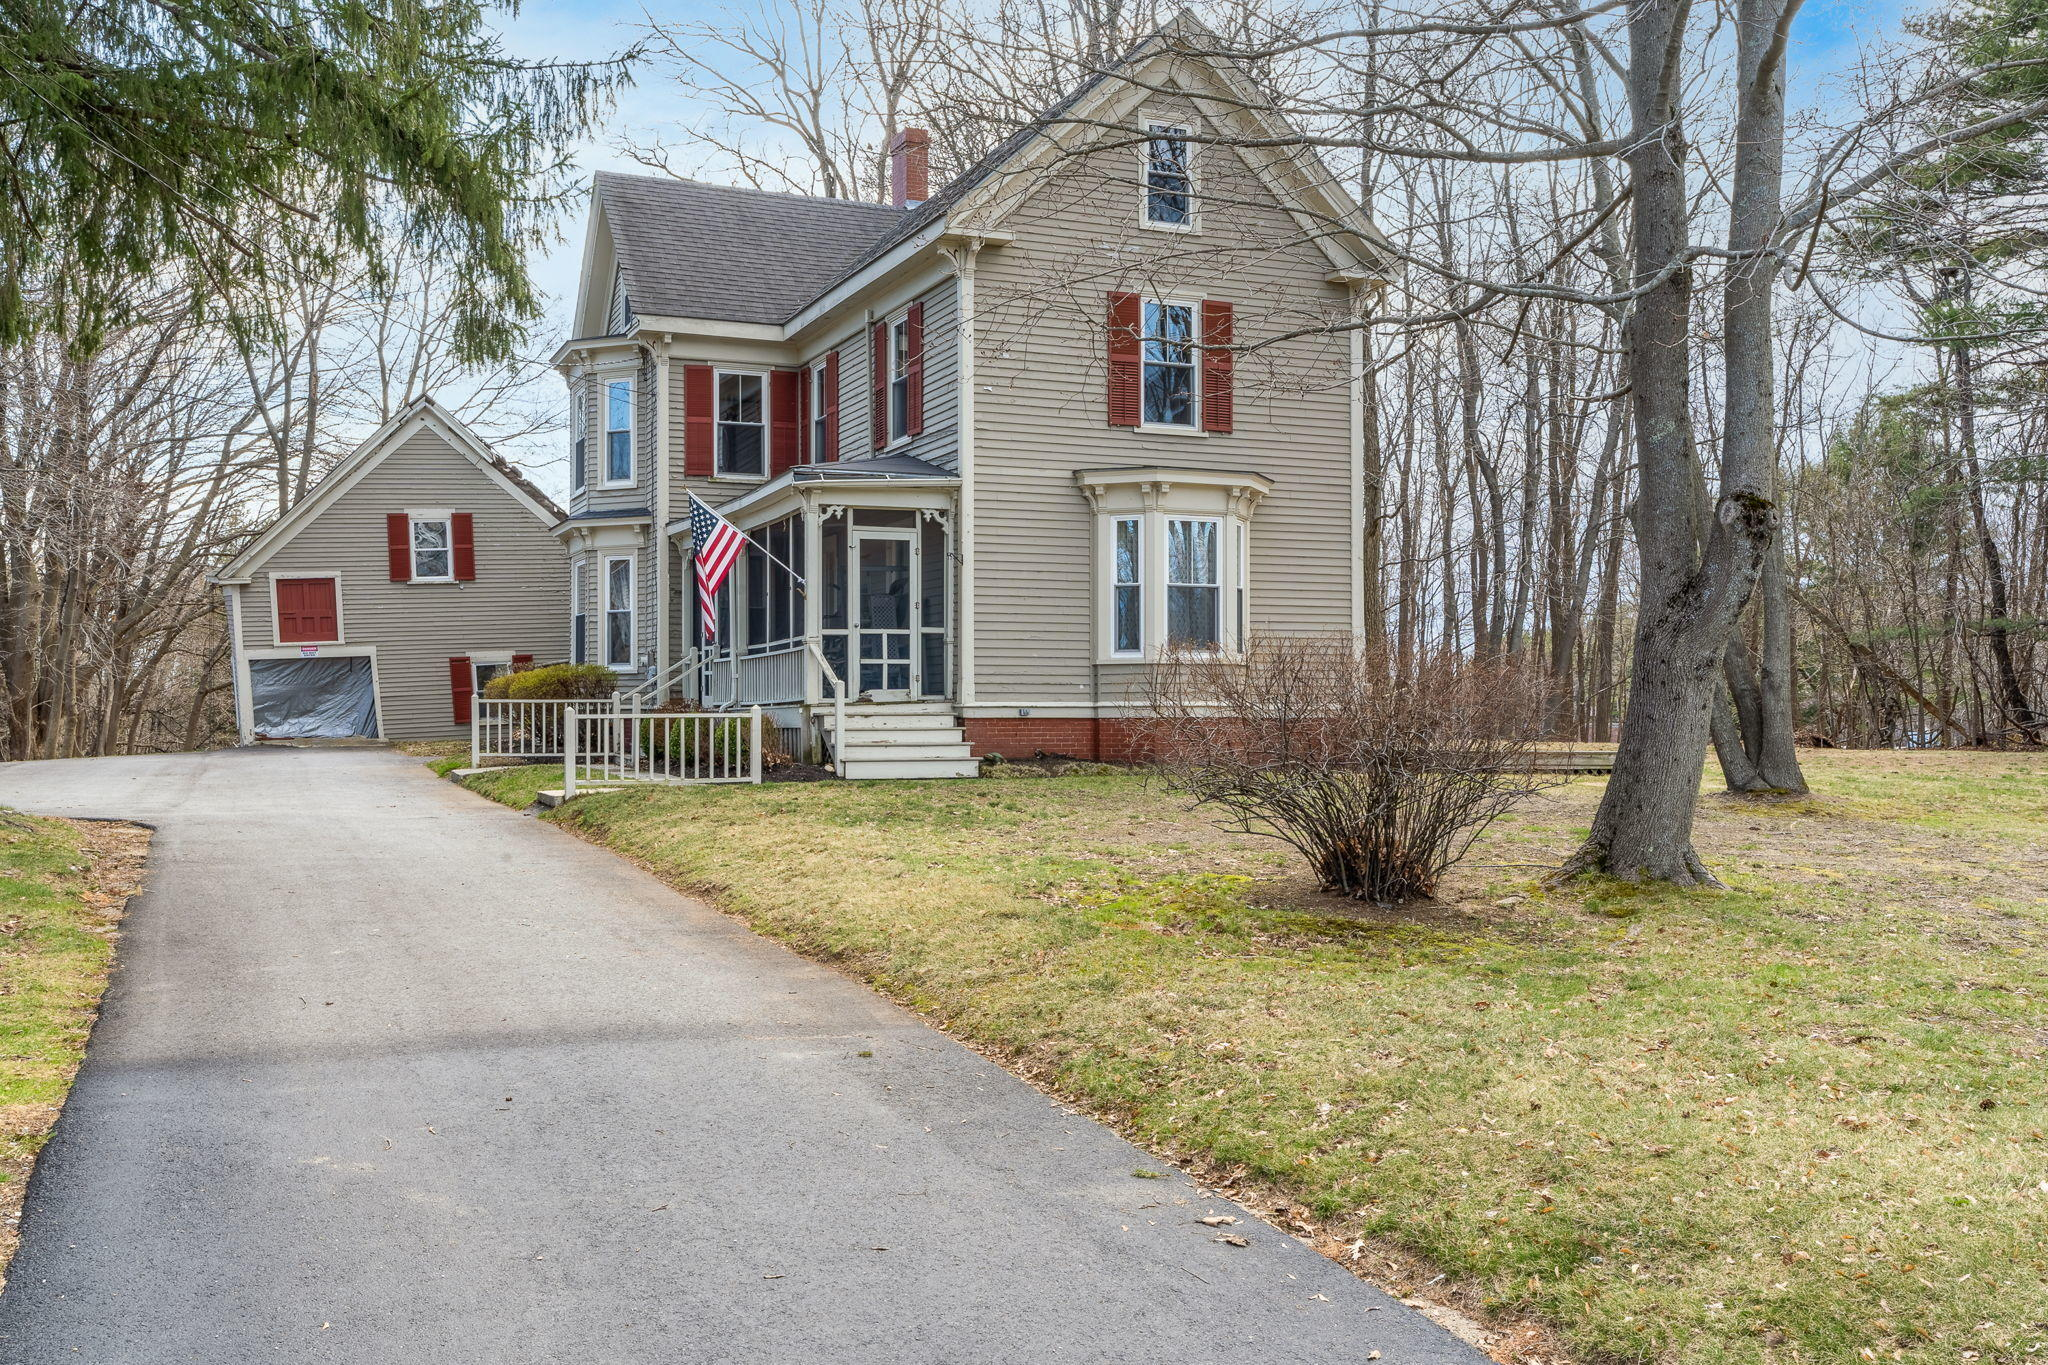 Main image for MLS listing 1471288